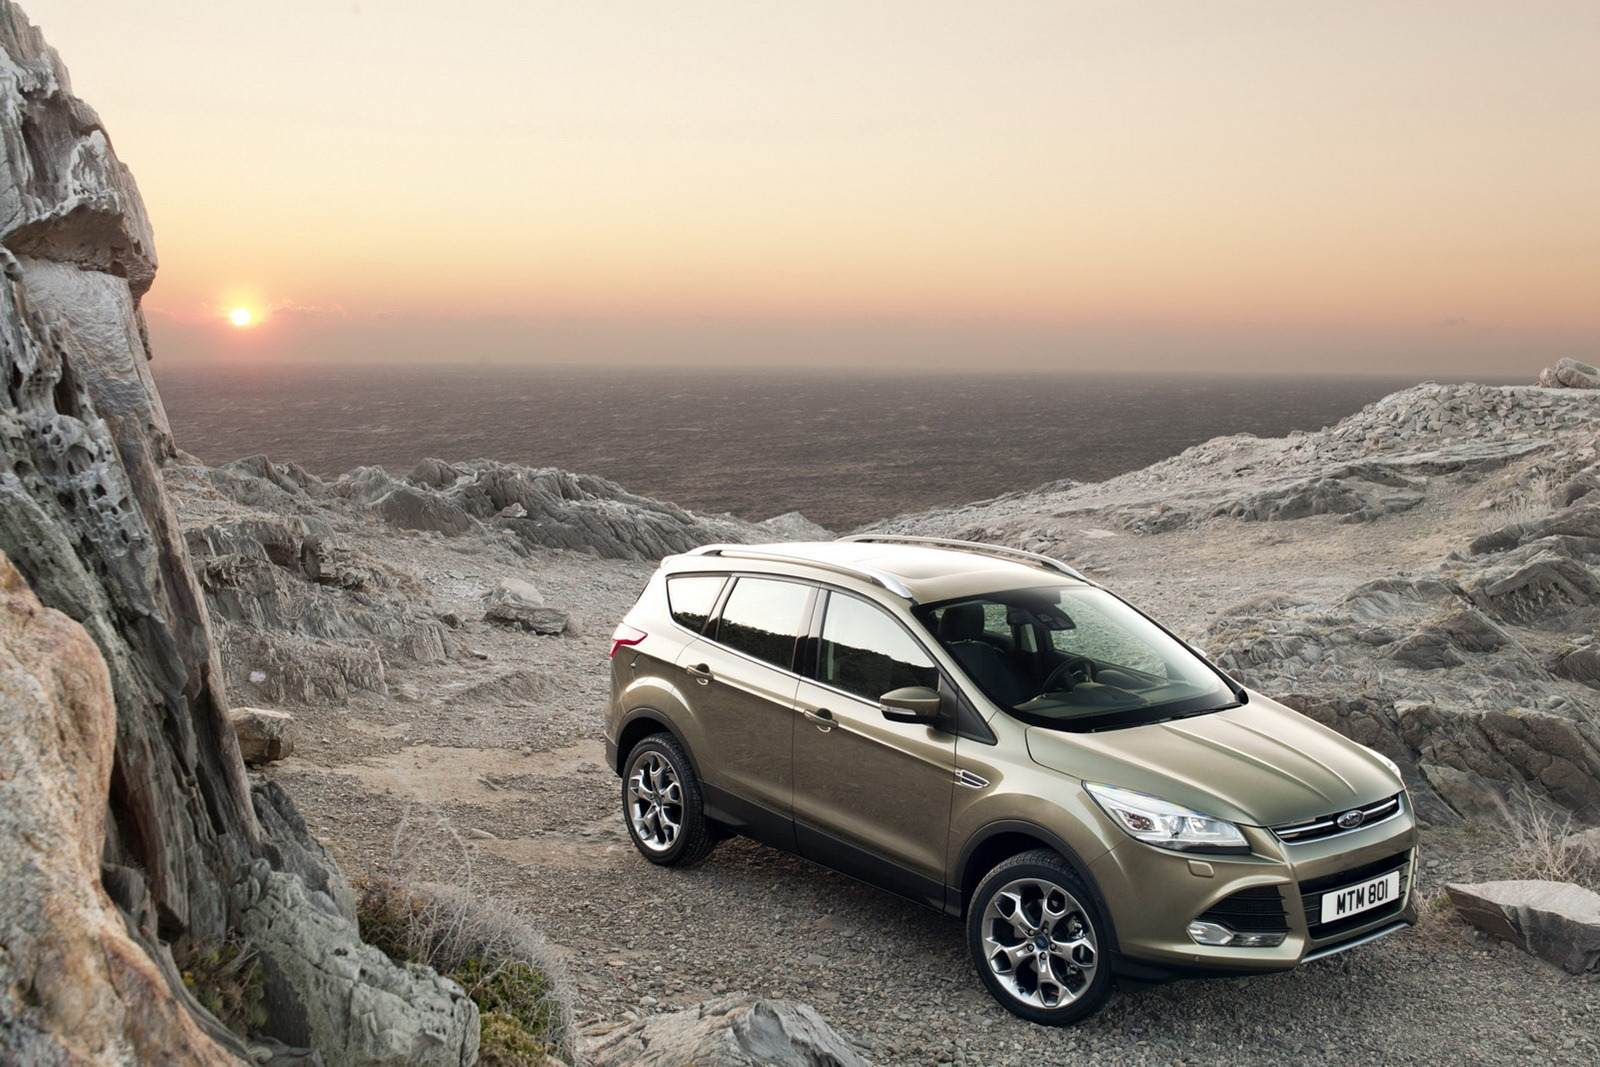 Ford Kuga wallpaper hd free download